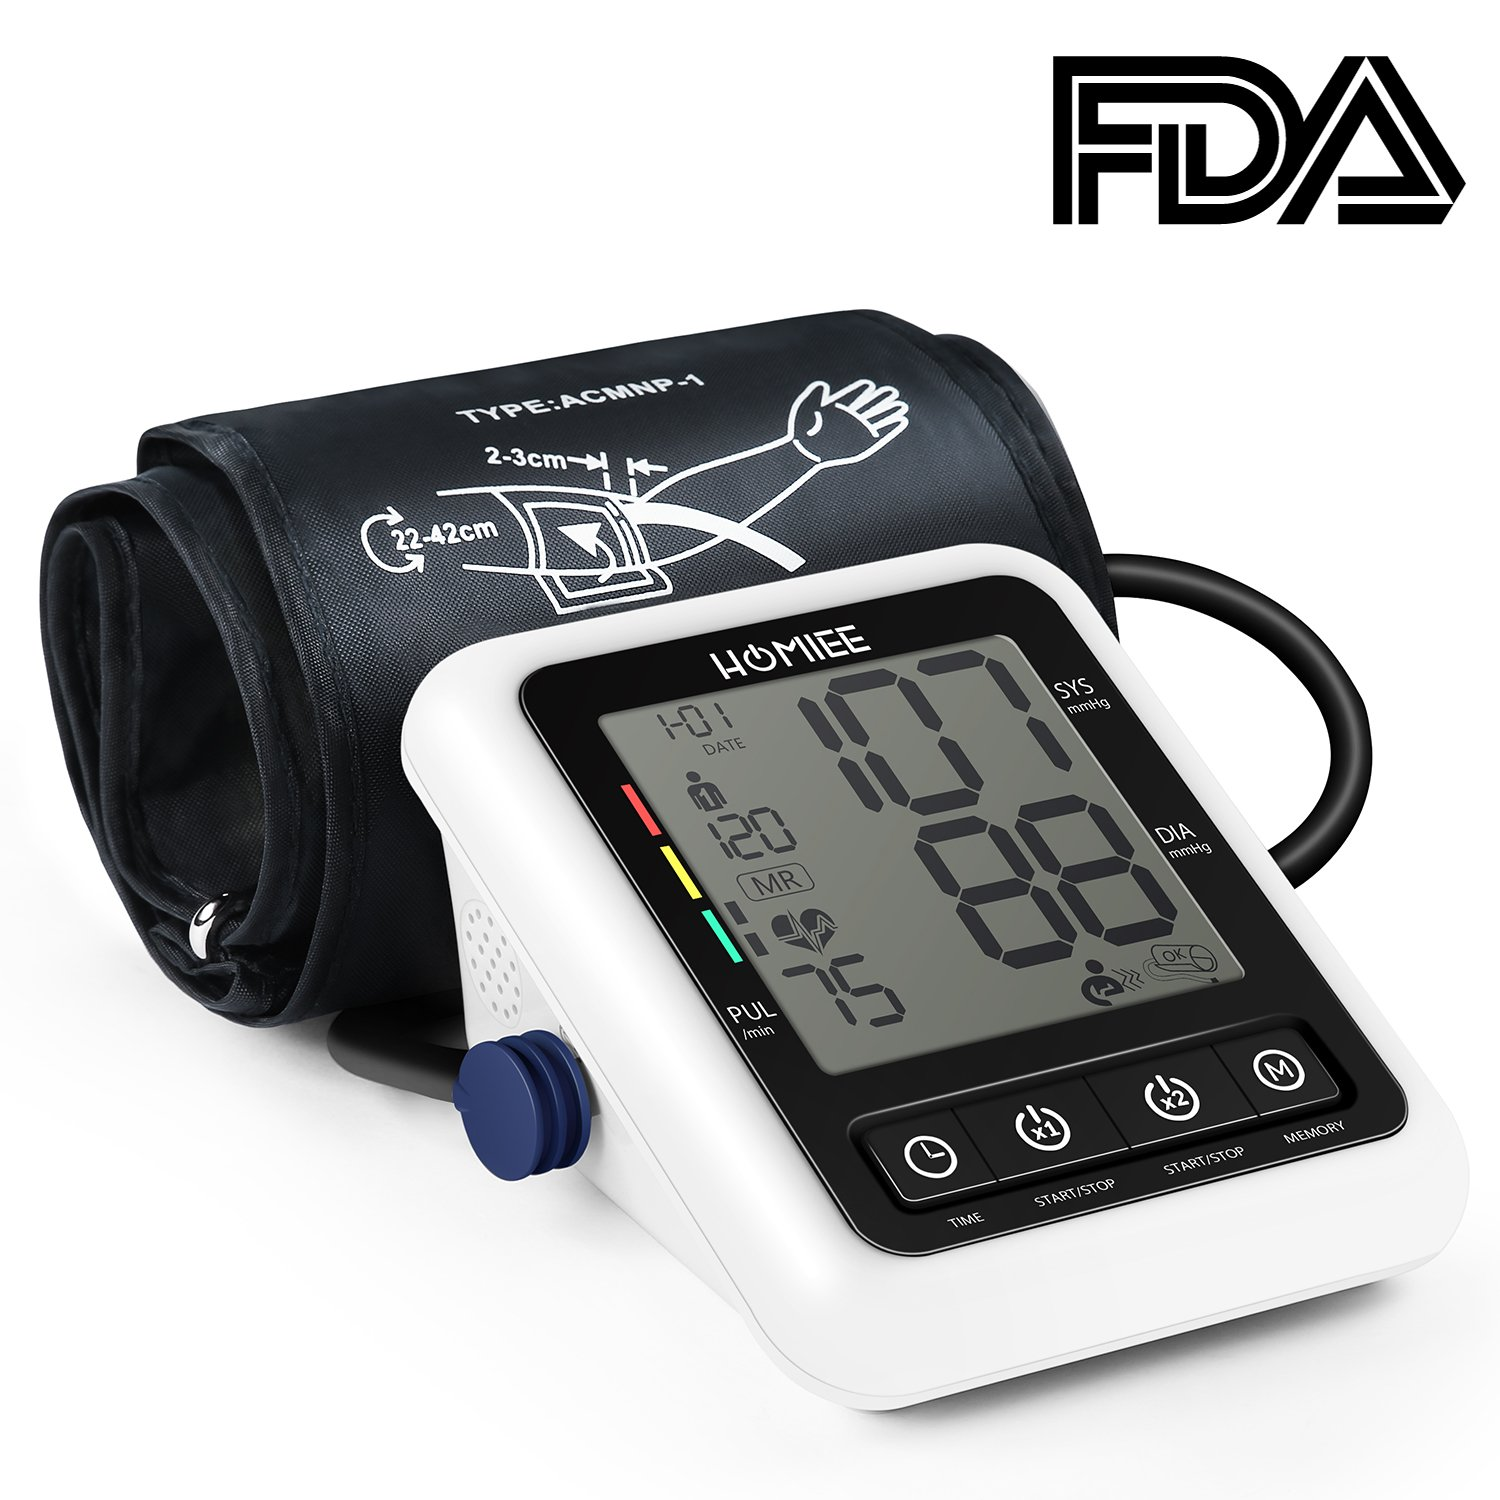 Blood Pressure Machine, HOMIEE Blood Pressure Monitor with AFIB Detection, 2 Users 240 Memories, 2.4'' LCD Display & 22-42CM Large Arm Cuff, 4x AA Batteries Included, No Adapter, FDA&CE Approved, White